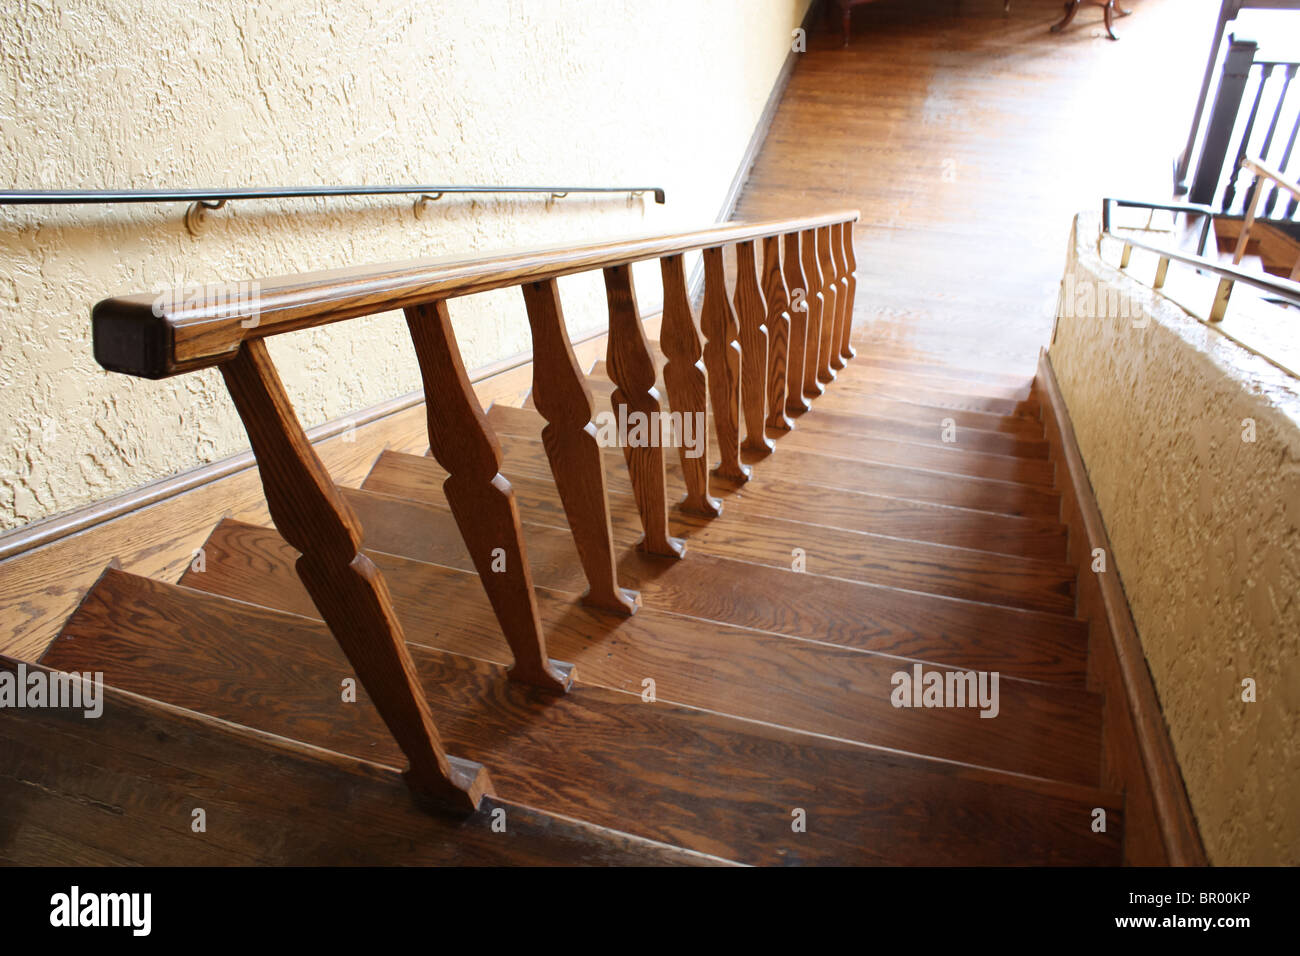 Wooden Stairs Looking Down Vintage Old Retro Stock Photo ...